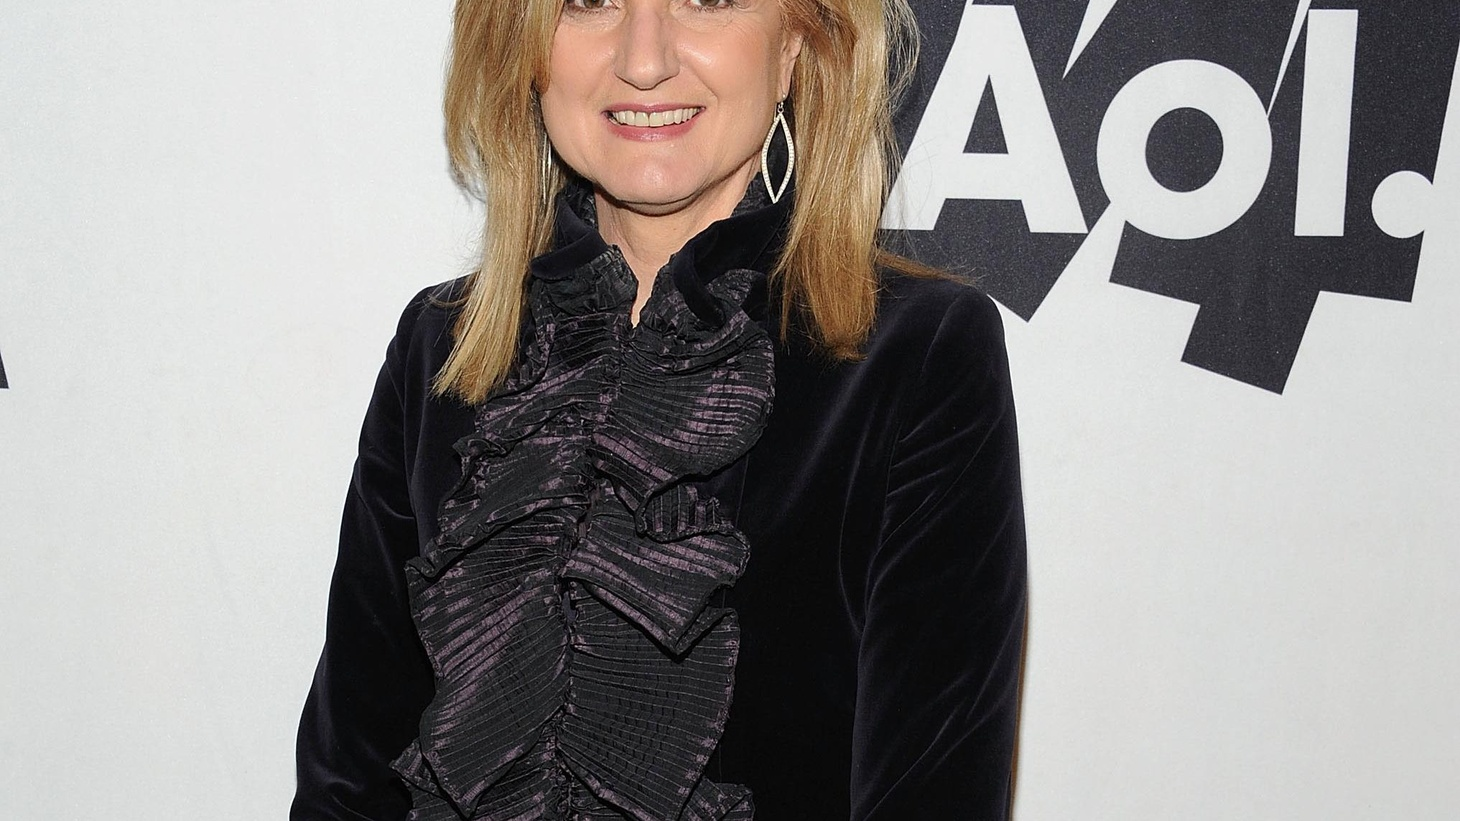 The five-year old website, the Huffington Post, has been bought by the Internet veteran AOL for a price of $315 million. Arianna Huffington will control all AOL's Internet content.  Will the reporting be original? Will the writers be paid? Will AOL reflect Huffington's left-of-center point of view? Is it all about quality news coverage or a bigger audience? We talk with Huffington and others, and hear about the fate of Southern California newspapers in the age of the Internet.  On our rebroadcast of To the Point, Egypt, the Internet and political change.